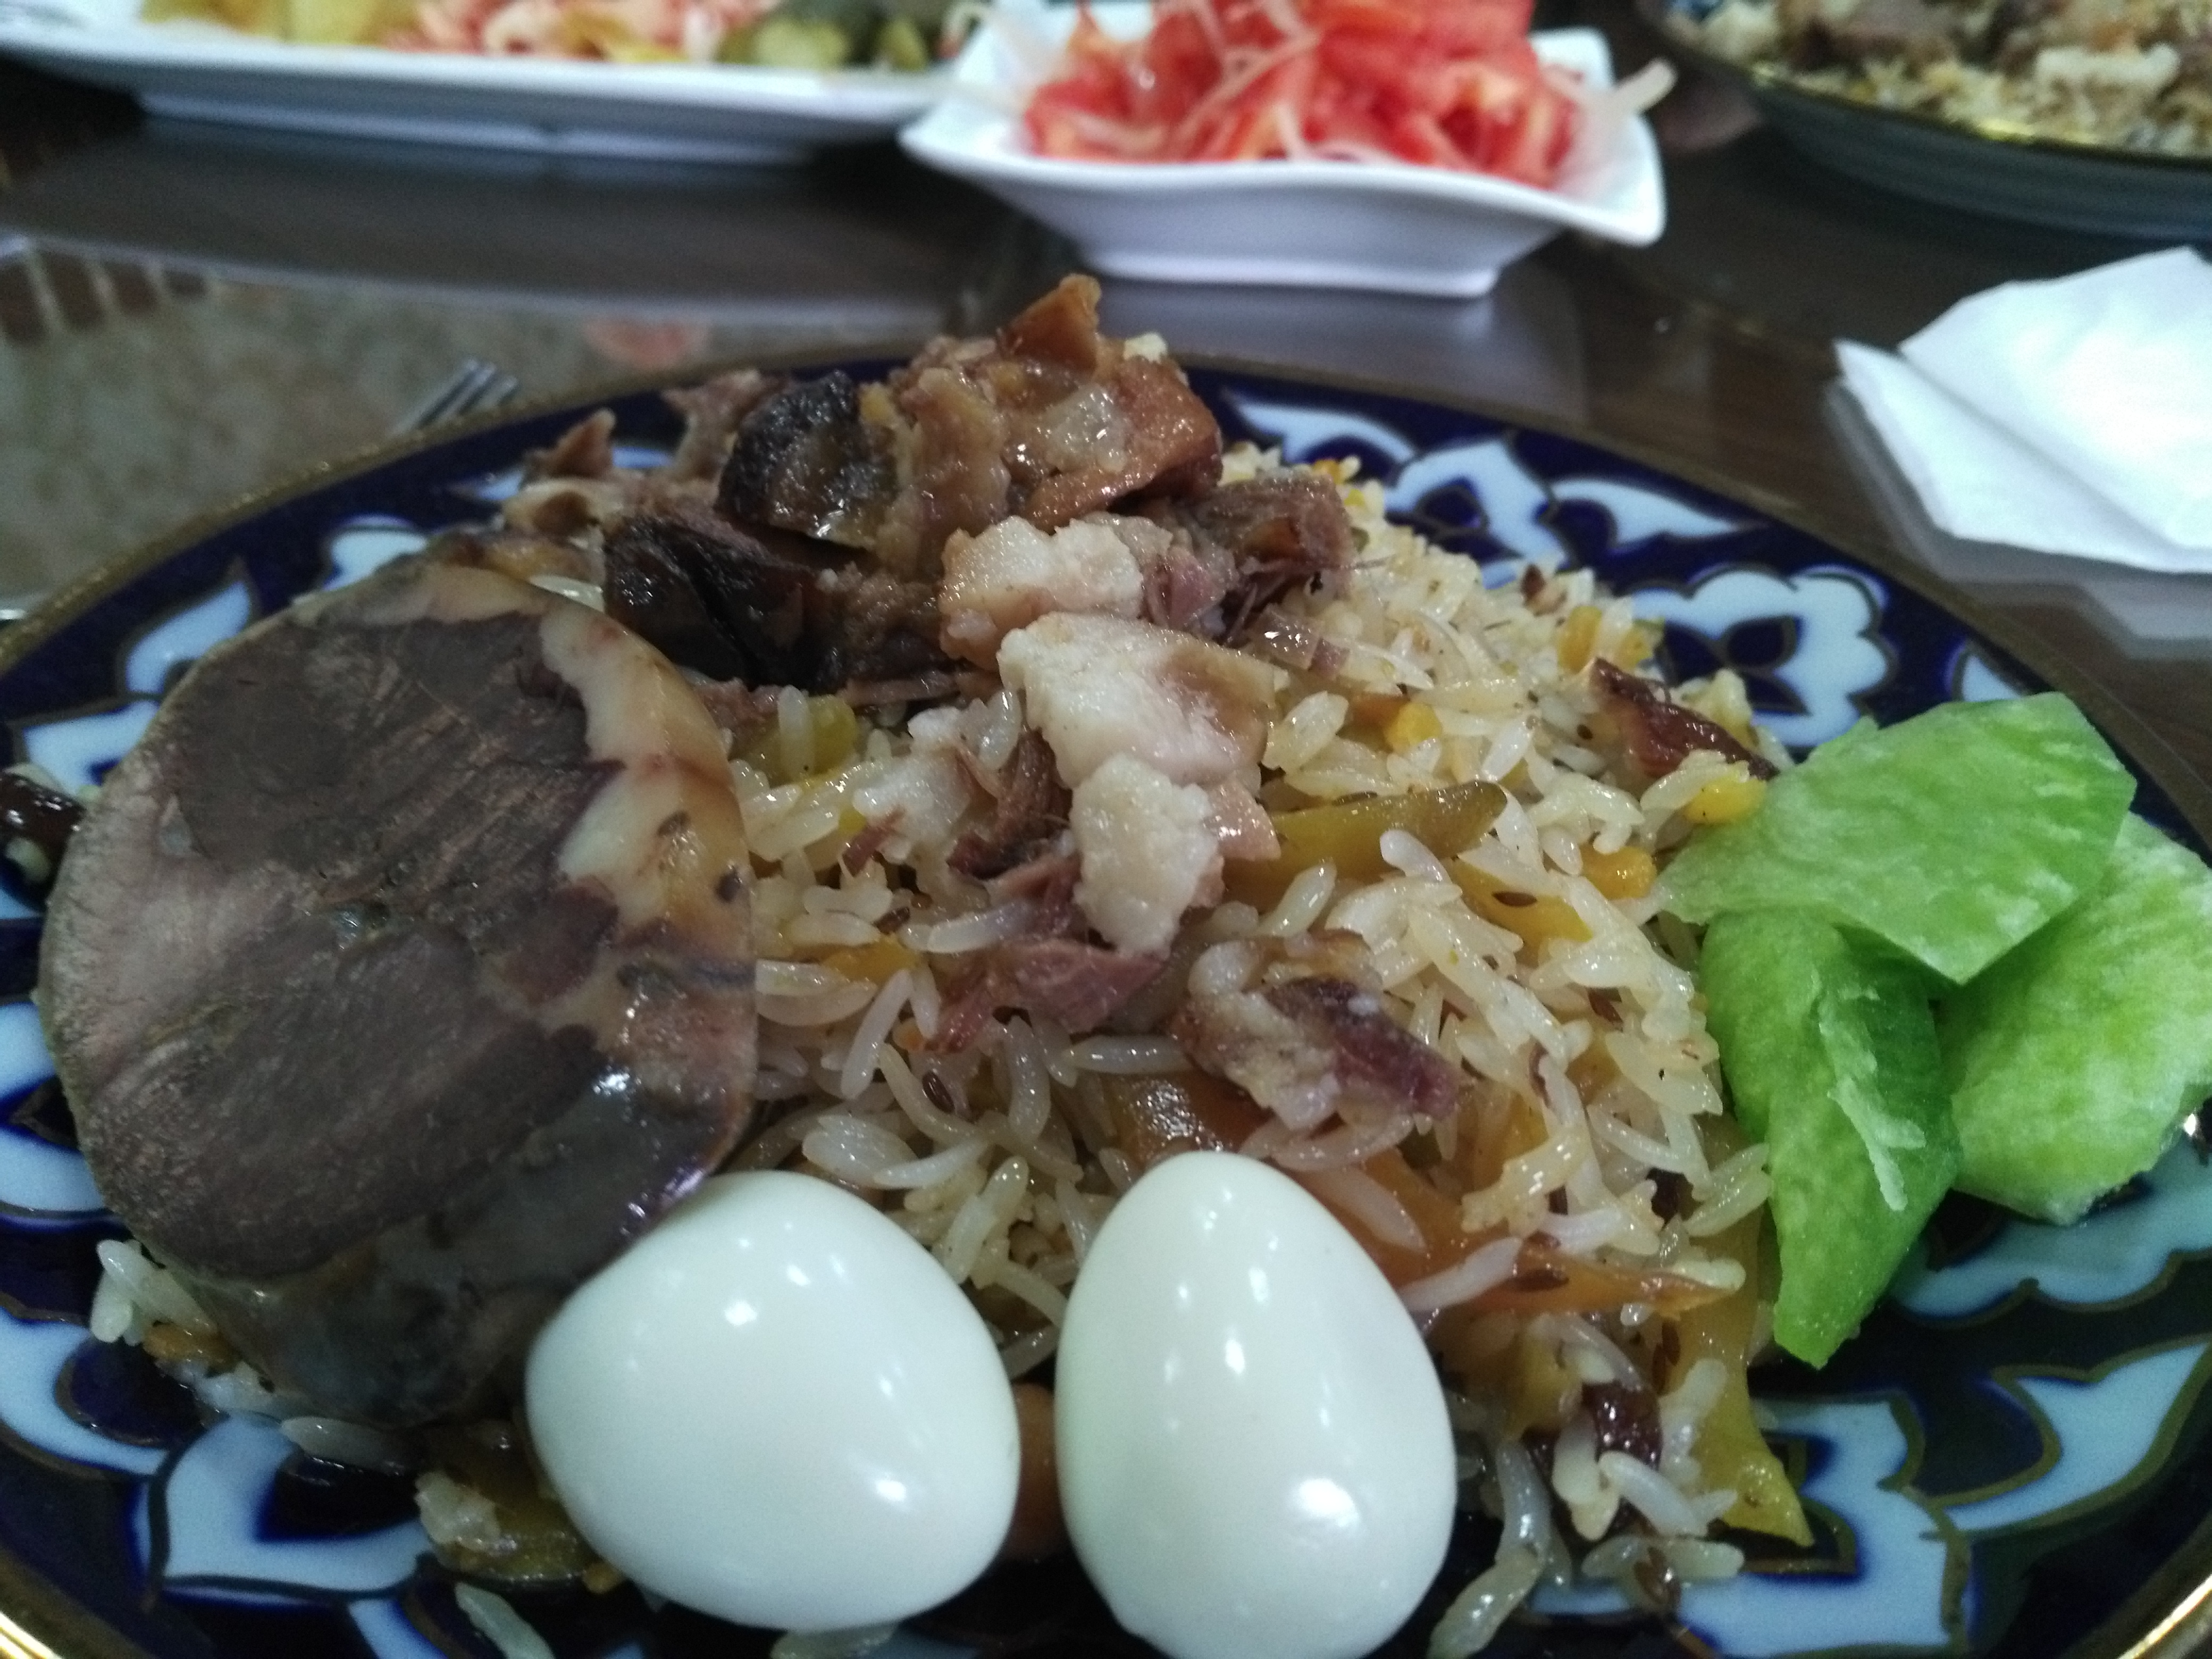 Wedding plov with horse meat and eggs (the best I've had so far).